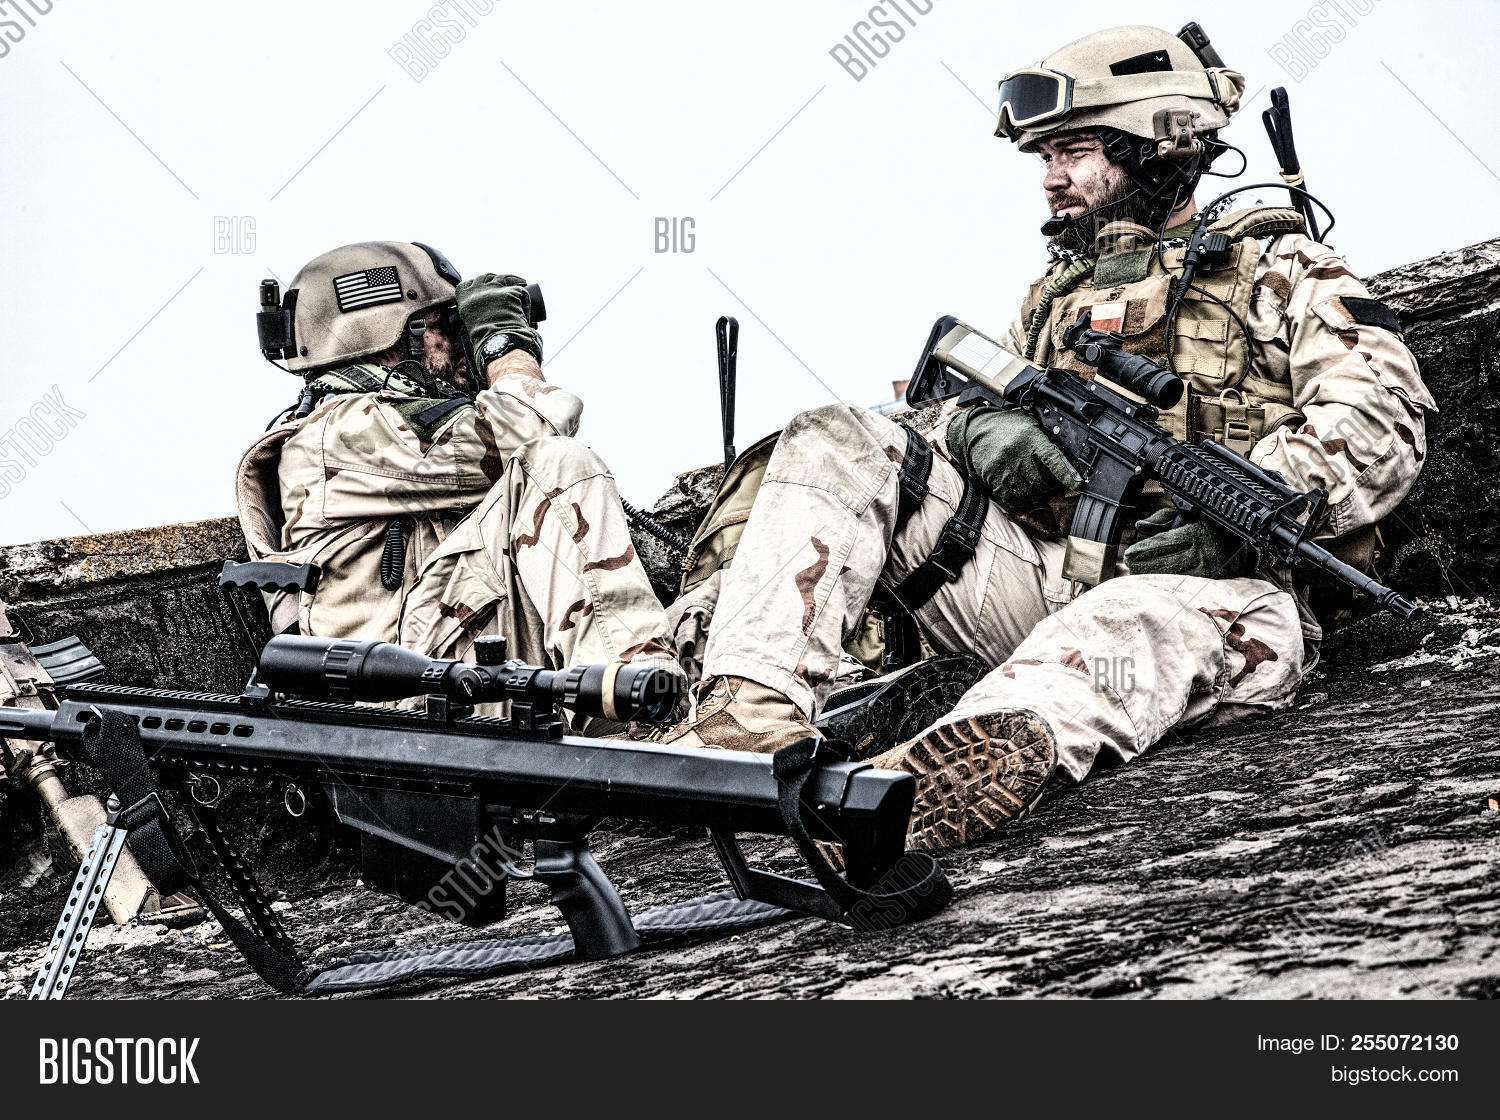 ambush,american,armed,arms,army,assault,camouflage,city,combat,combatant,commando,conflict,elite,firearm,forces,guard,gun,helmet,infantry,infantryman,marksman,mercenary,military,navy,observation,observe,ranger,rifle,roof,seal,security,service,serviceman,shooter,sit,soldier,special,states,tactics,troops,uniform,united,urban,us,usa,war,warfare,watch,weapon